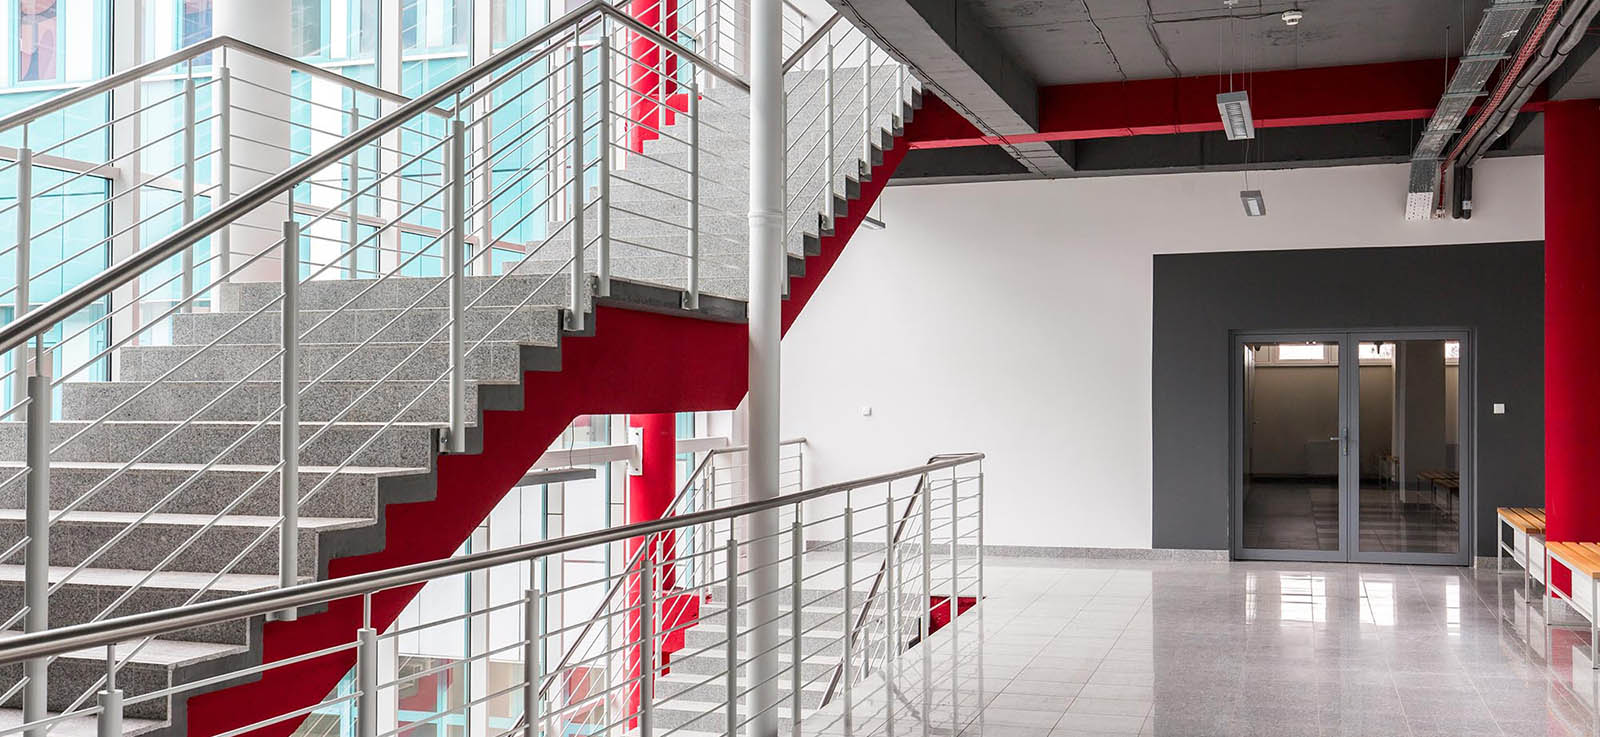 Open, empty school hallway with red, white, and dark grey theme